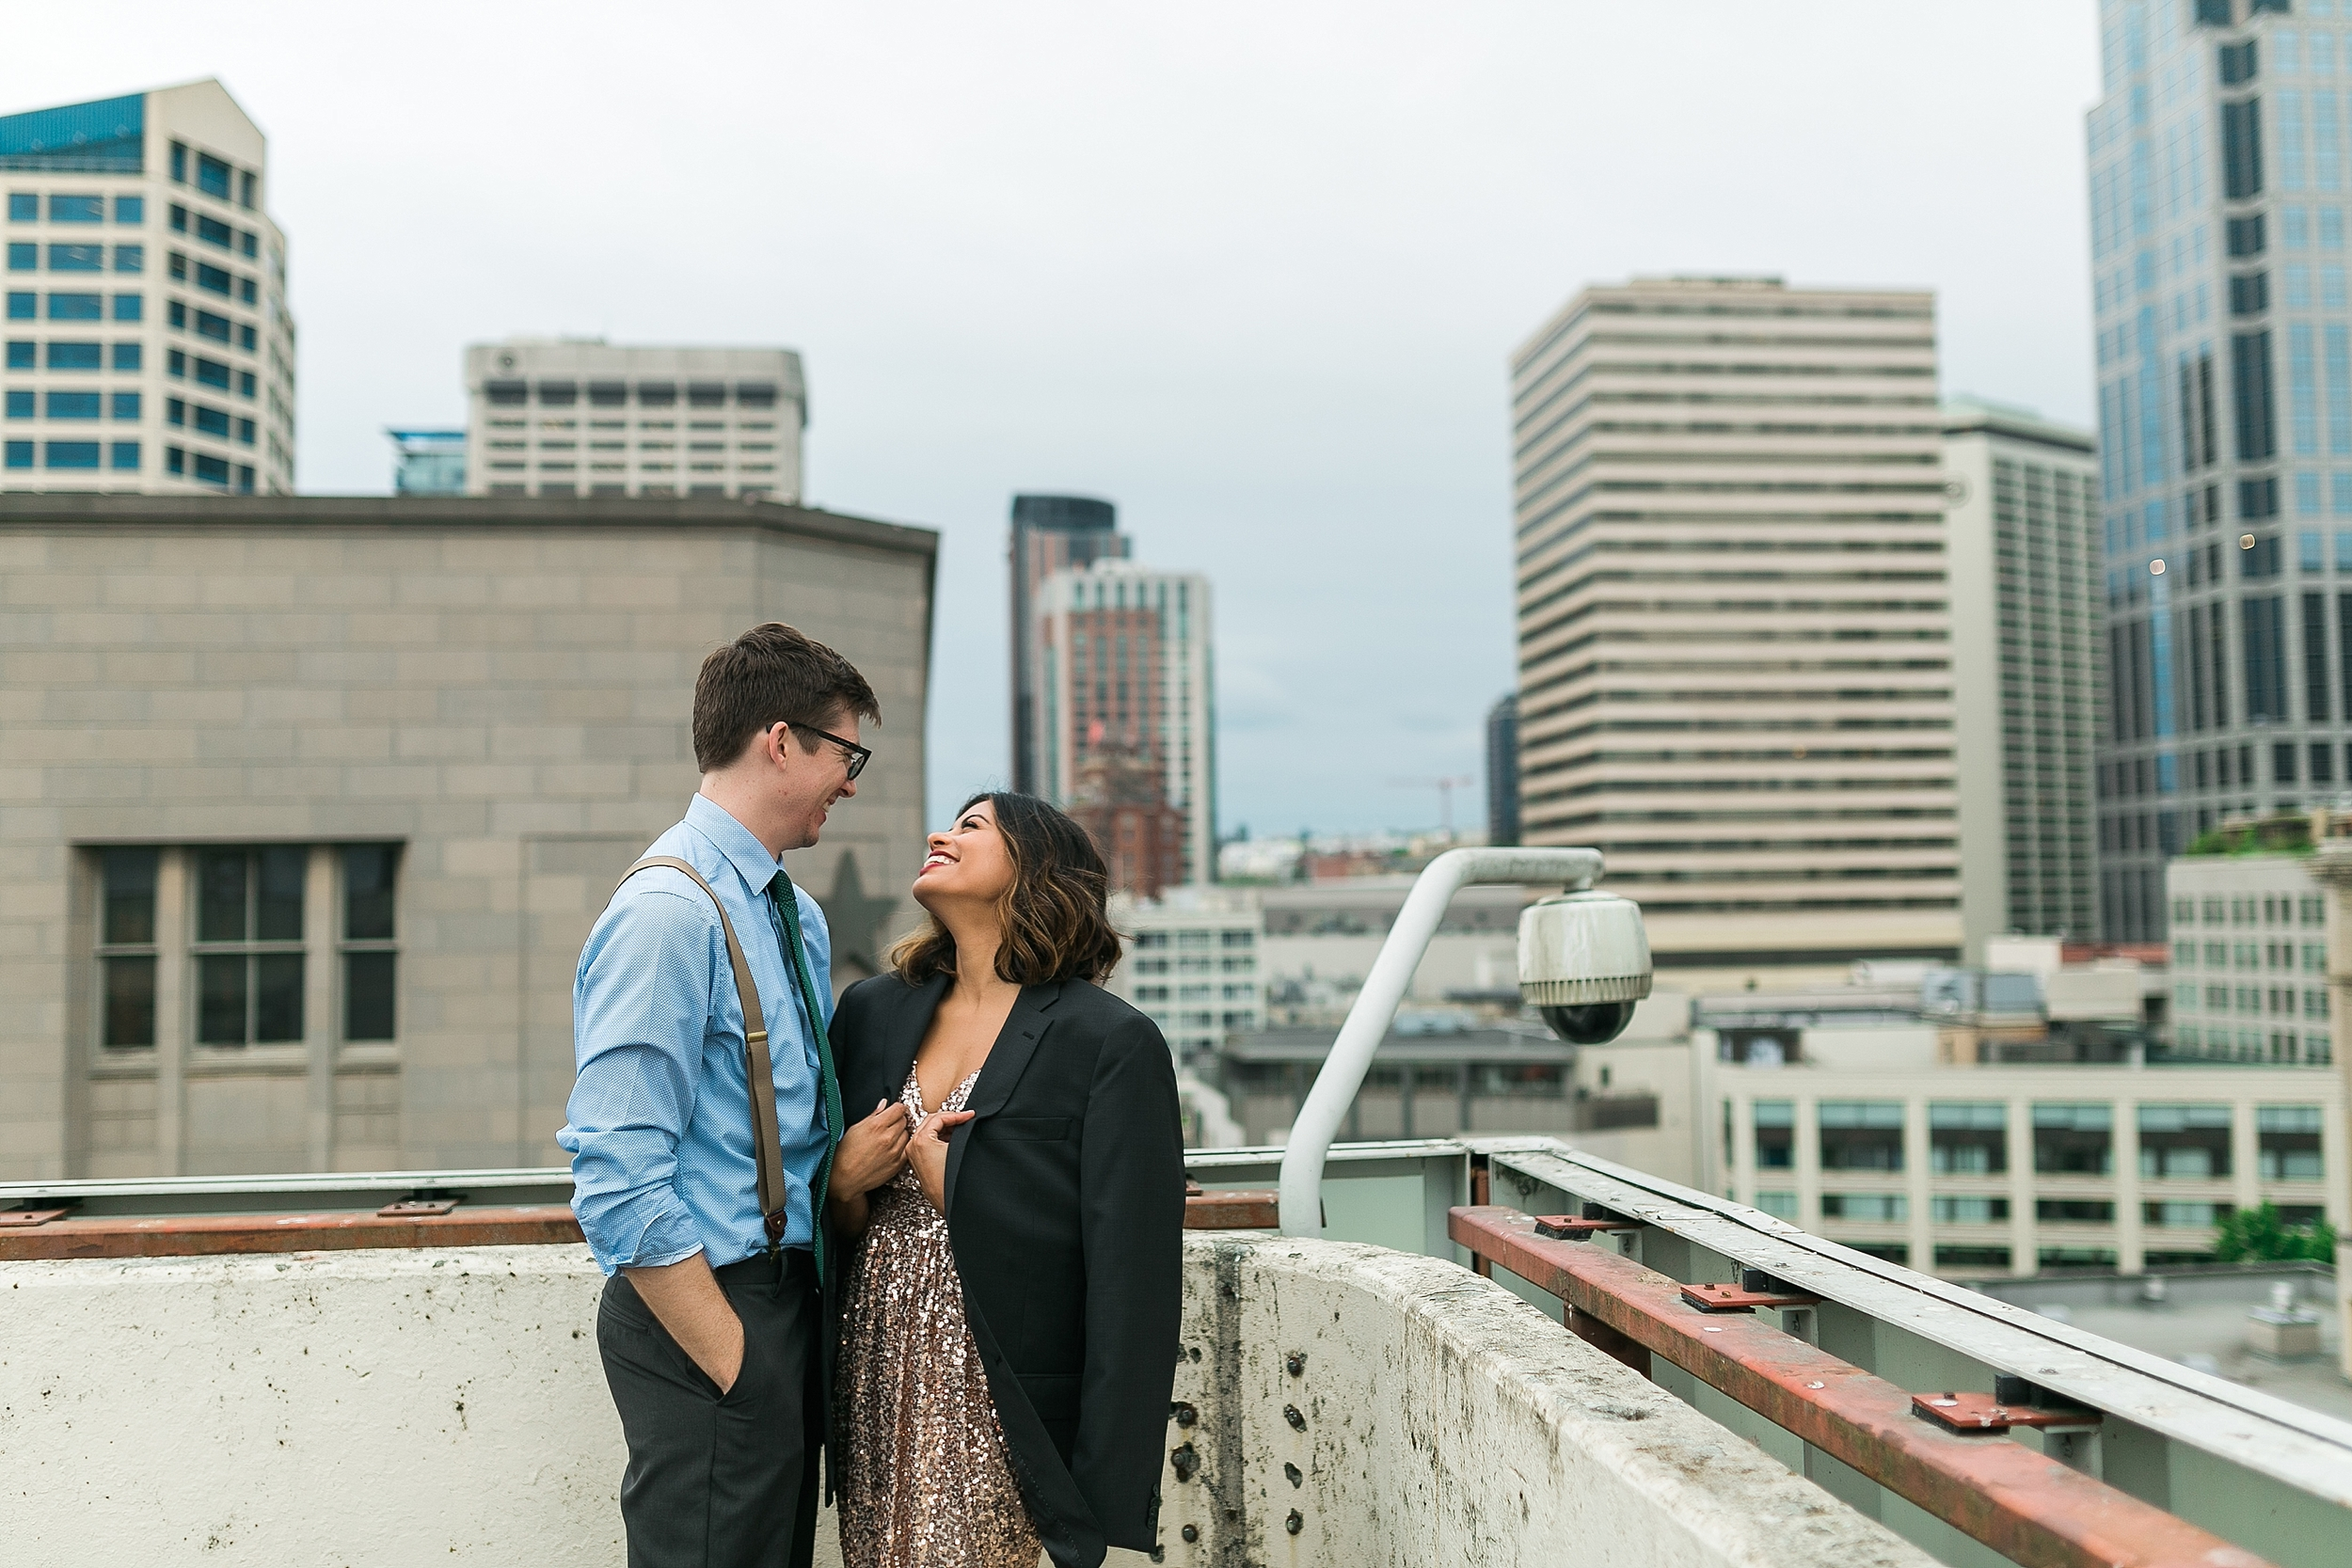 ashley vos photography seattle area engagement photographer_0600.jpg